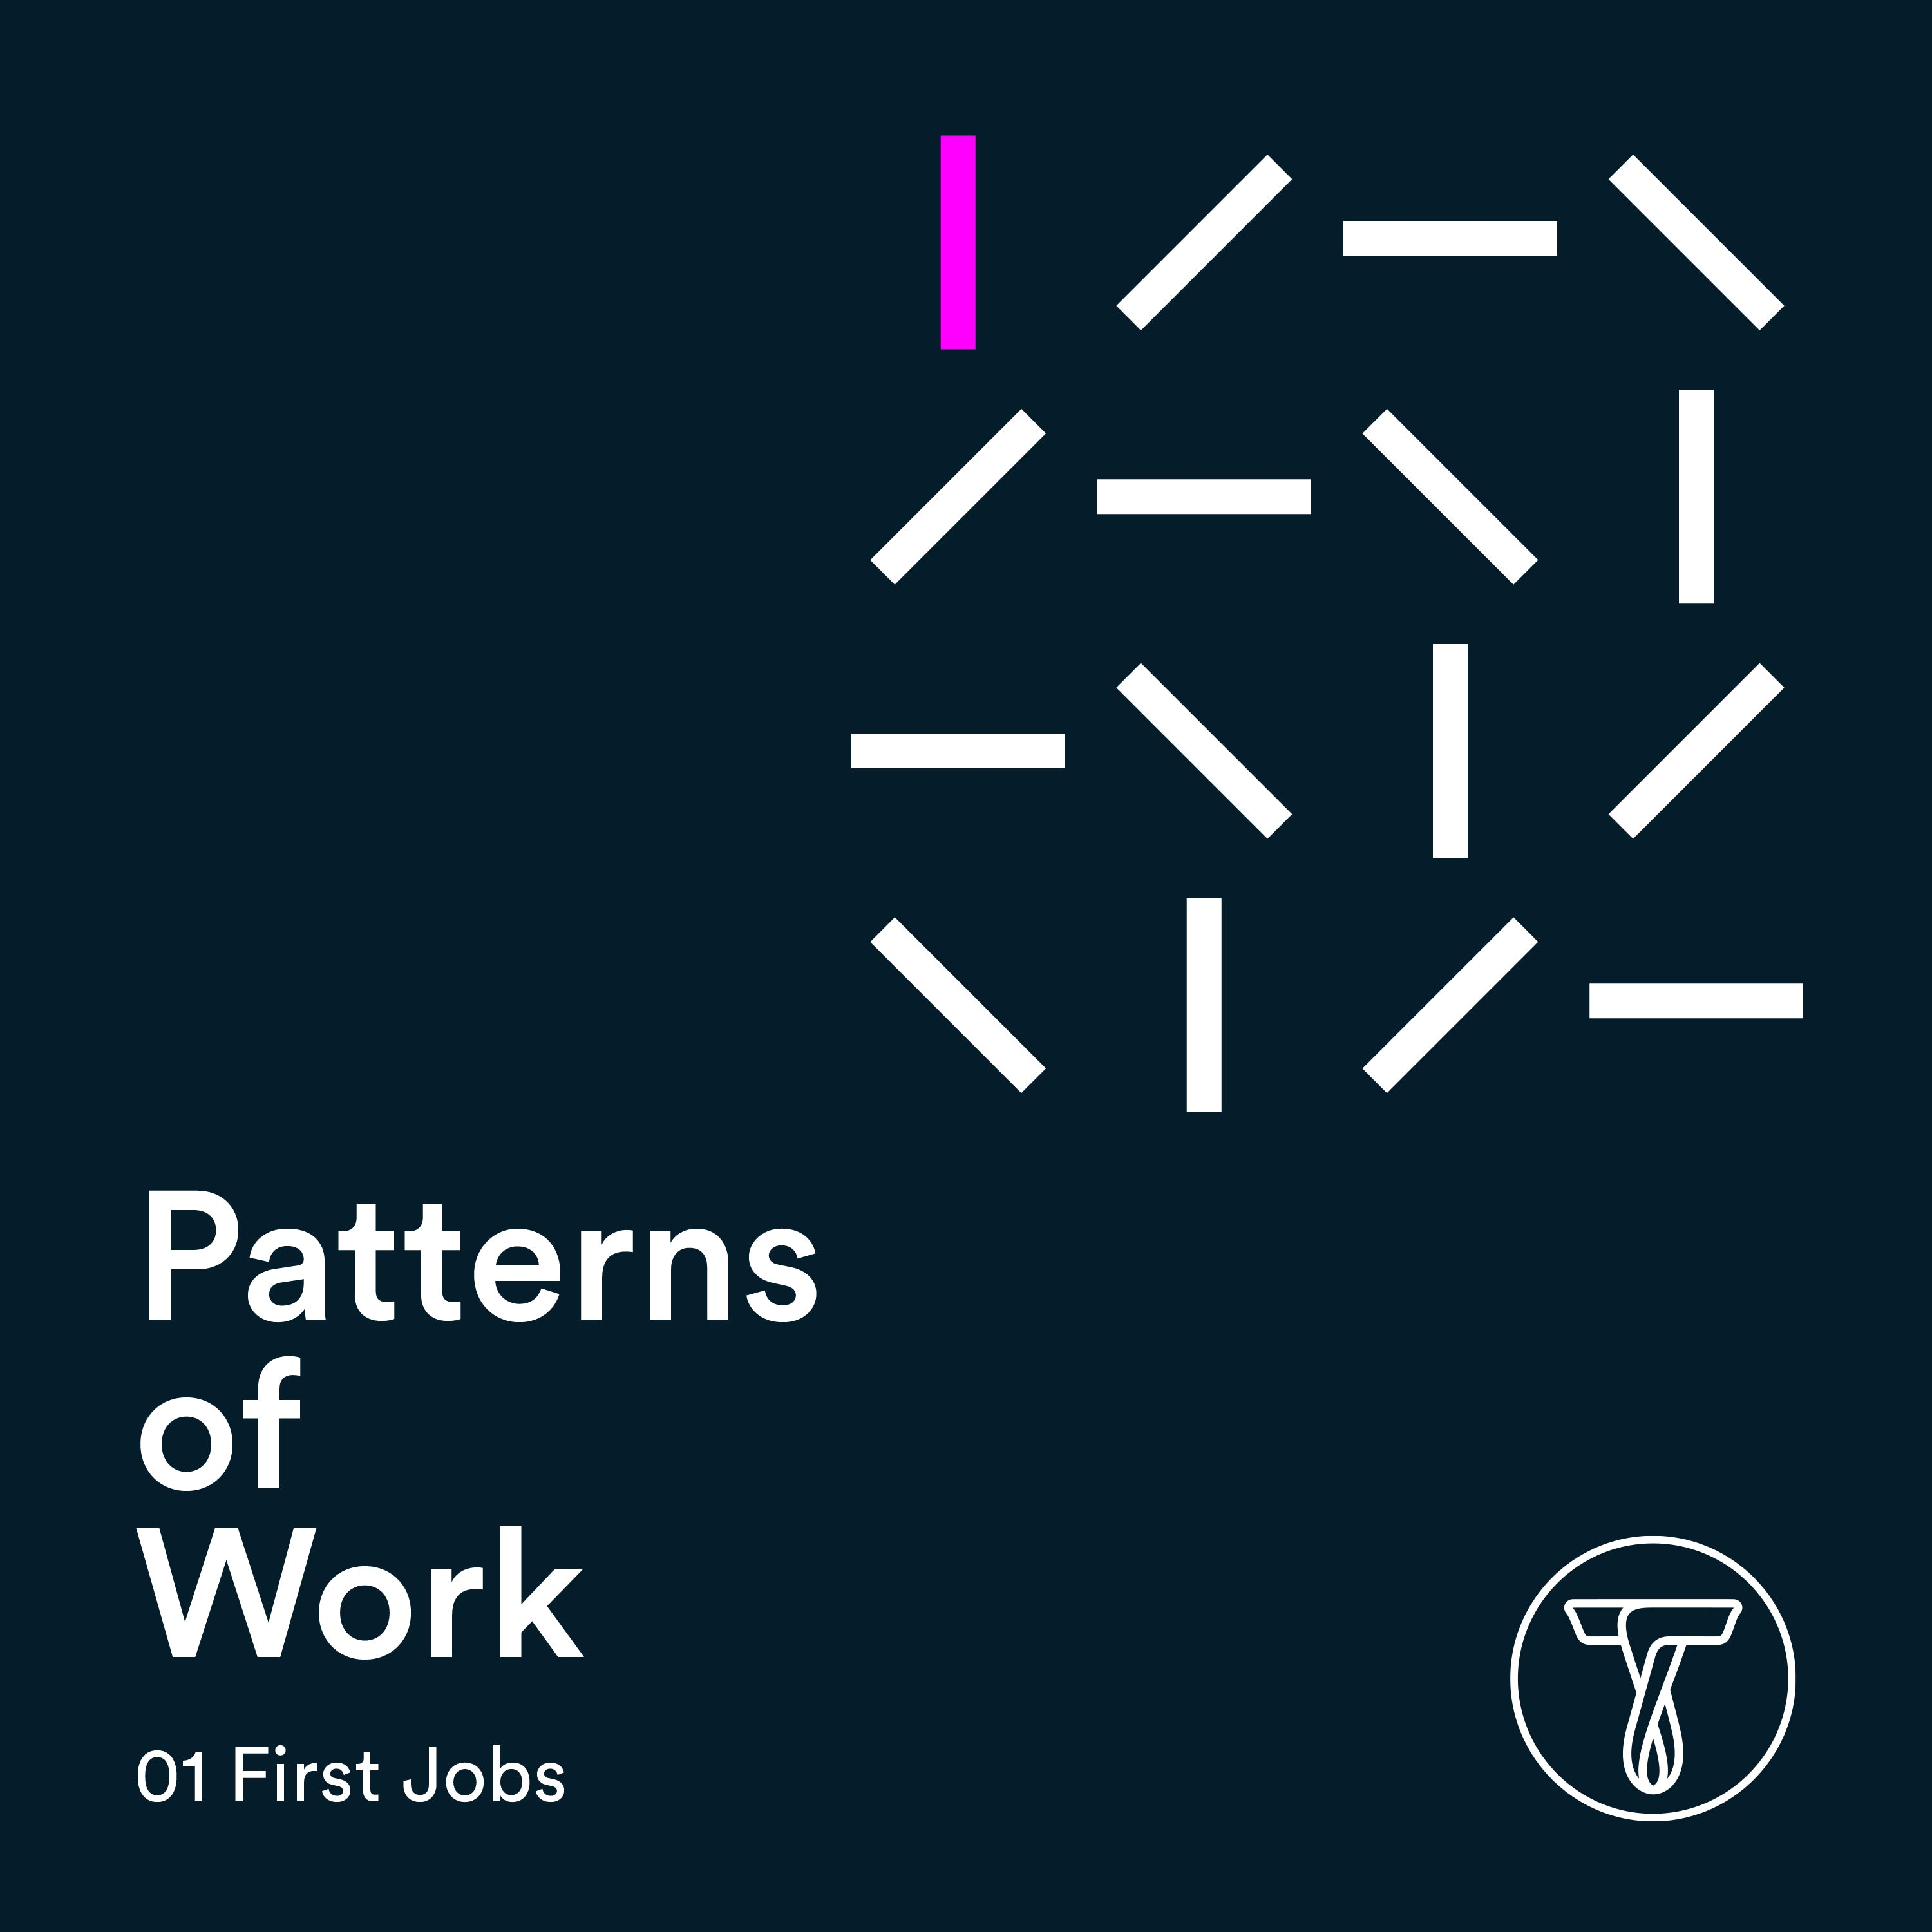 Patterns of Work, Trope Publishing Co